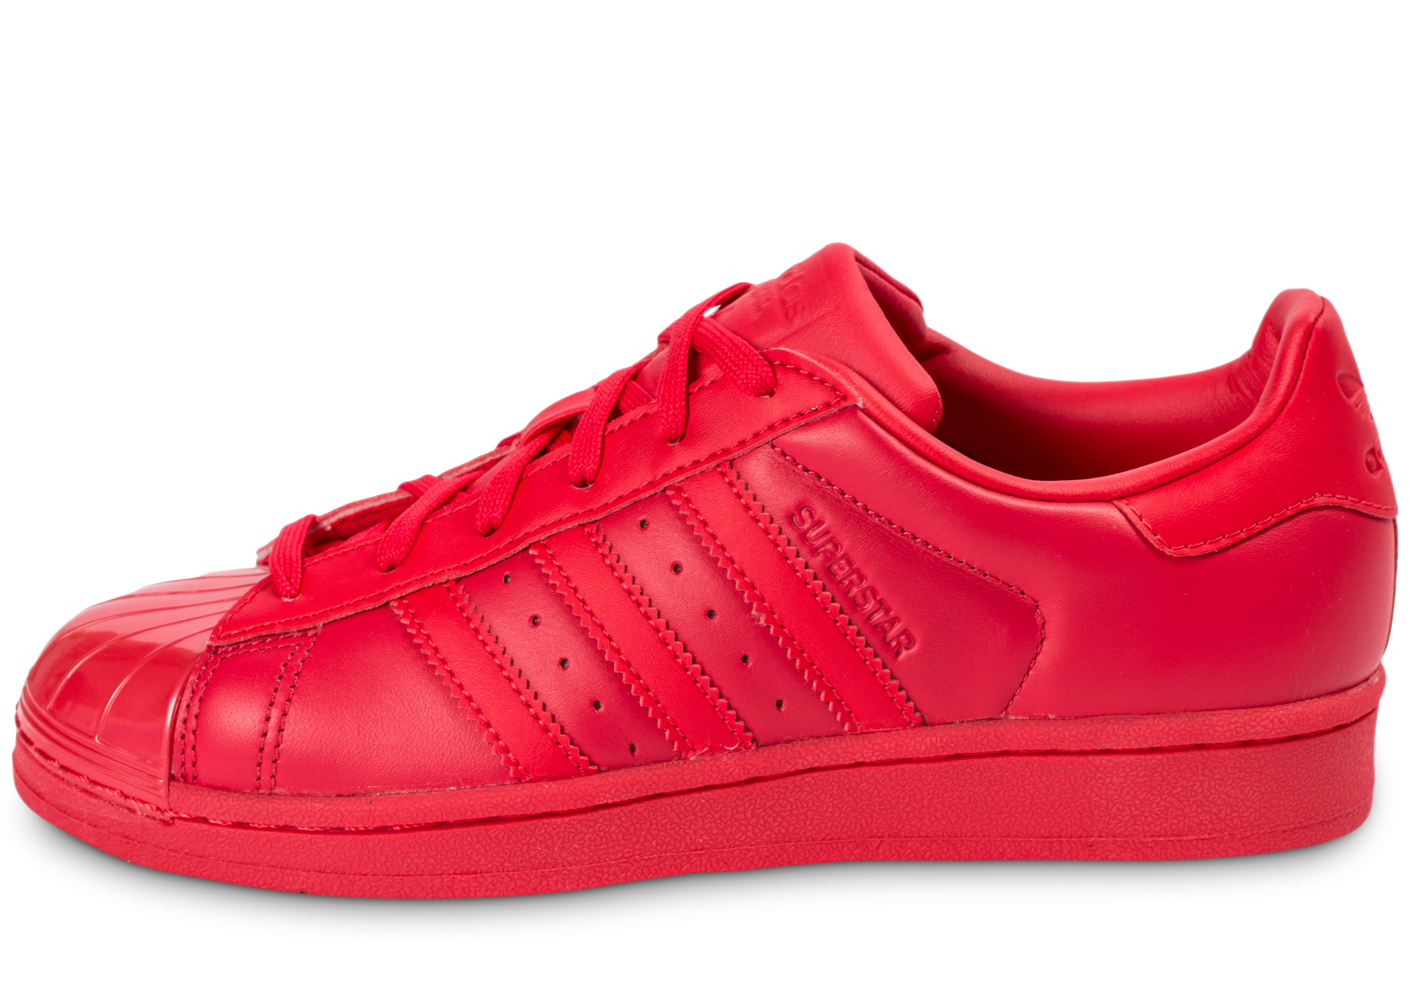 adidas Superstar Glossy Toe rouge - Chaussures adidas - Chausport